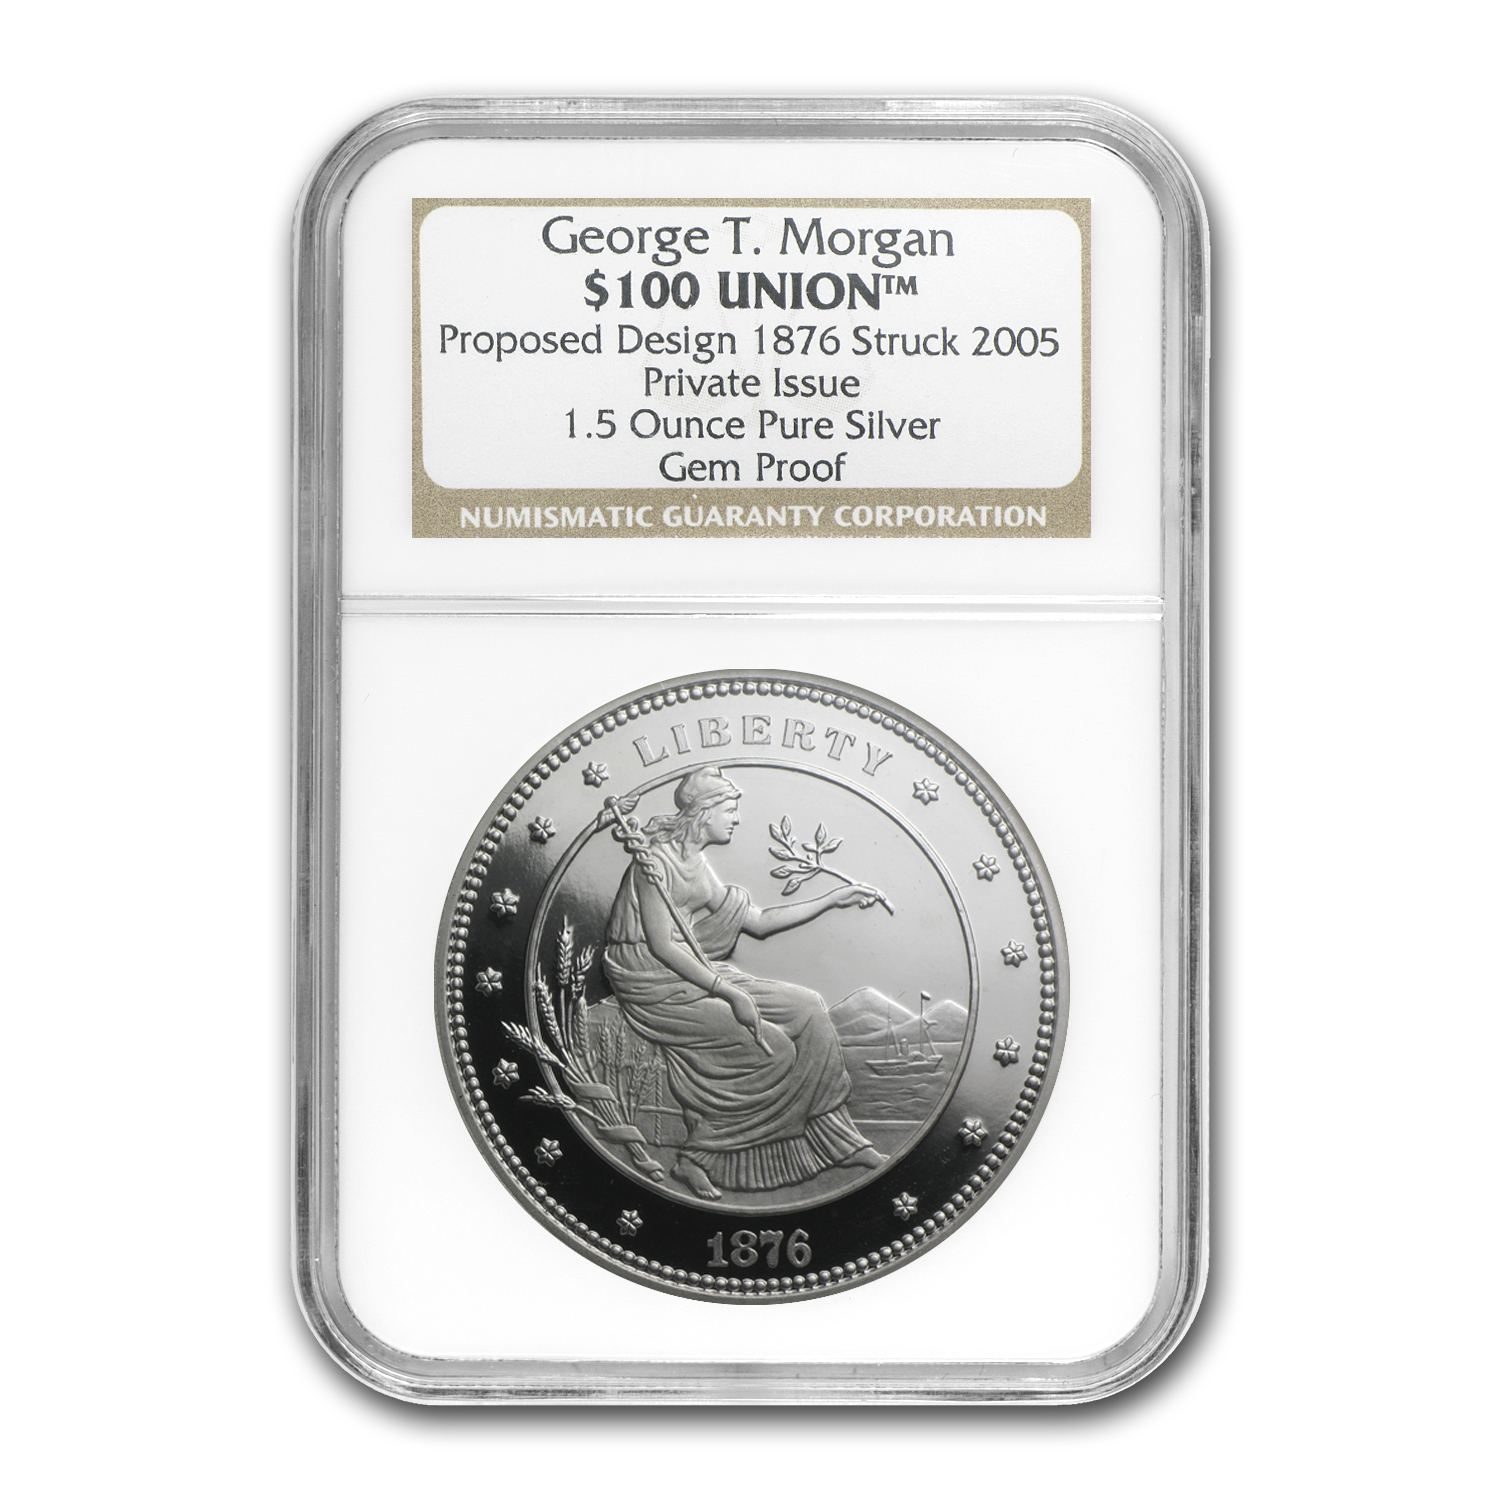 1.5 oz Silver Round - $100 Union George T Morgan (NGC, Gem Proof)